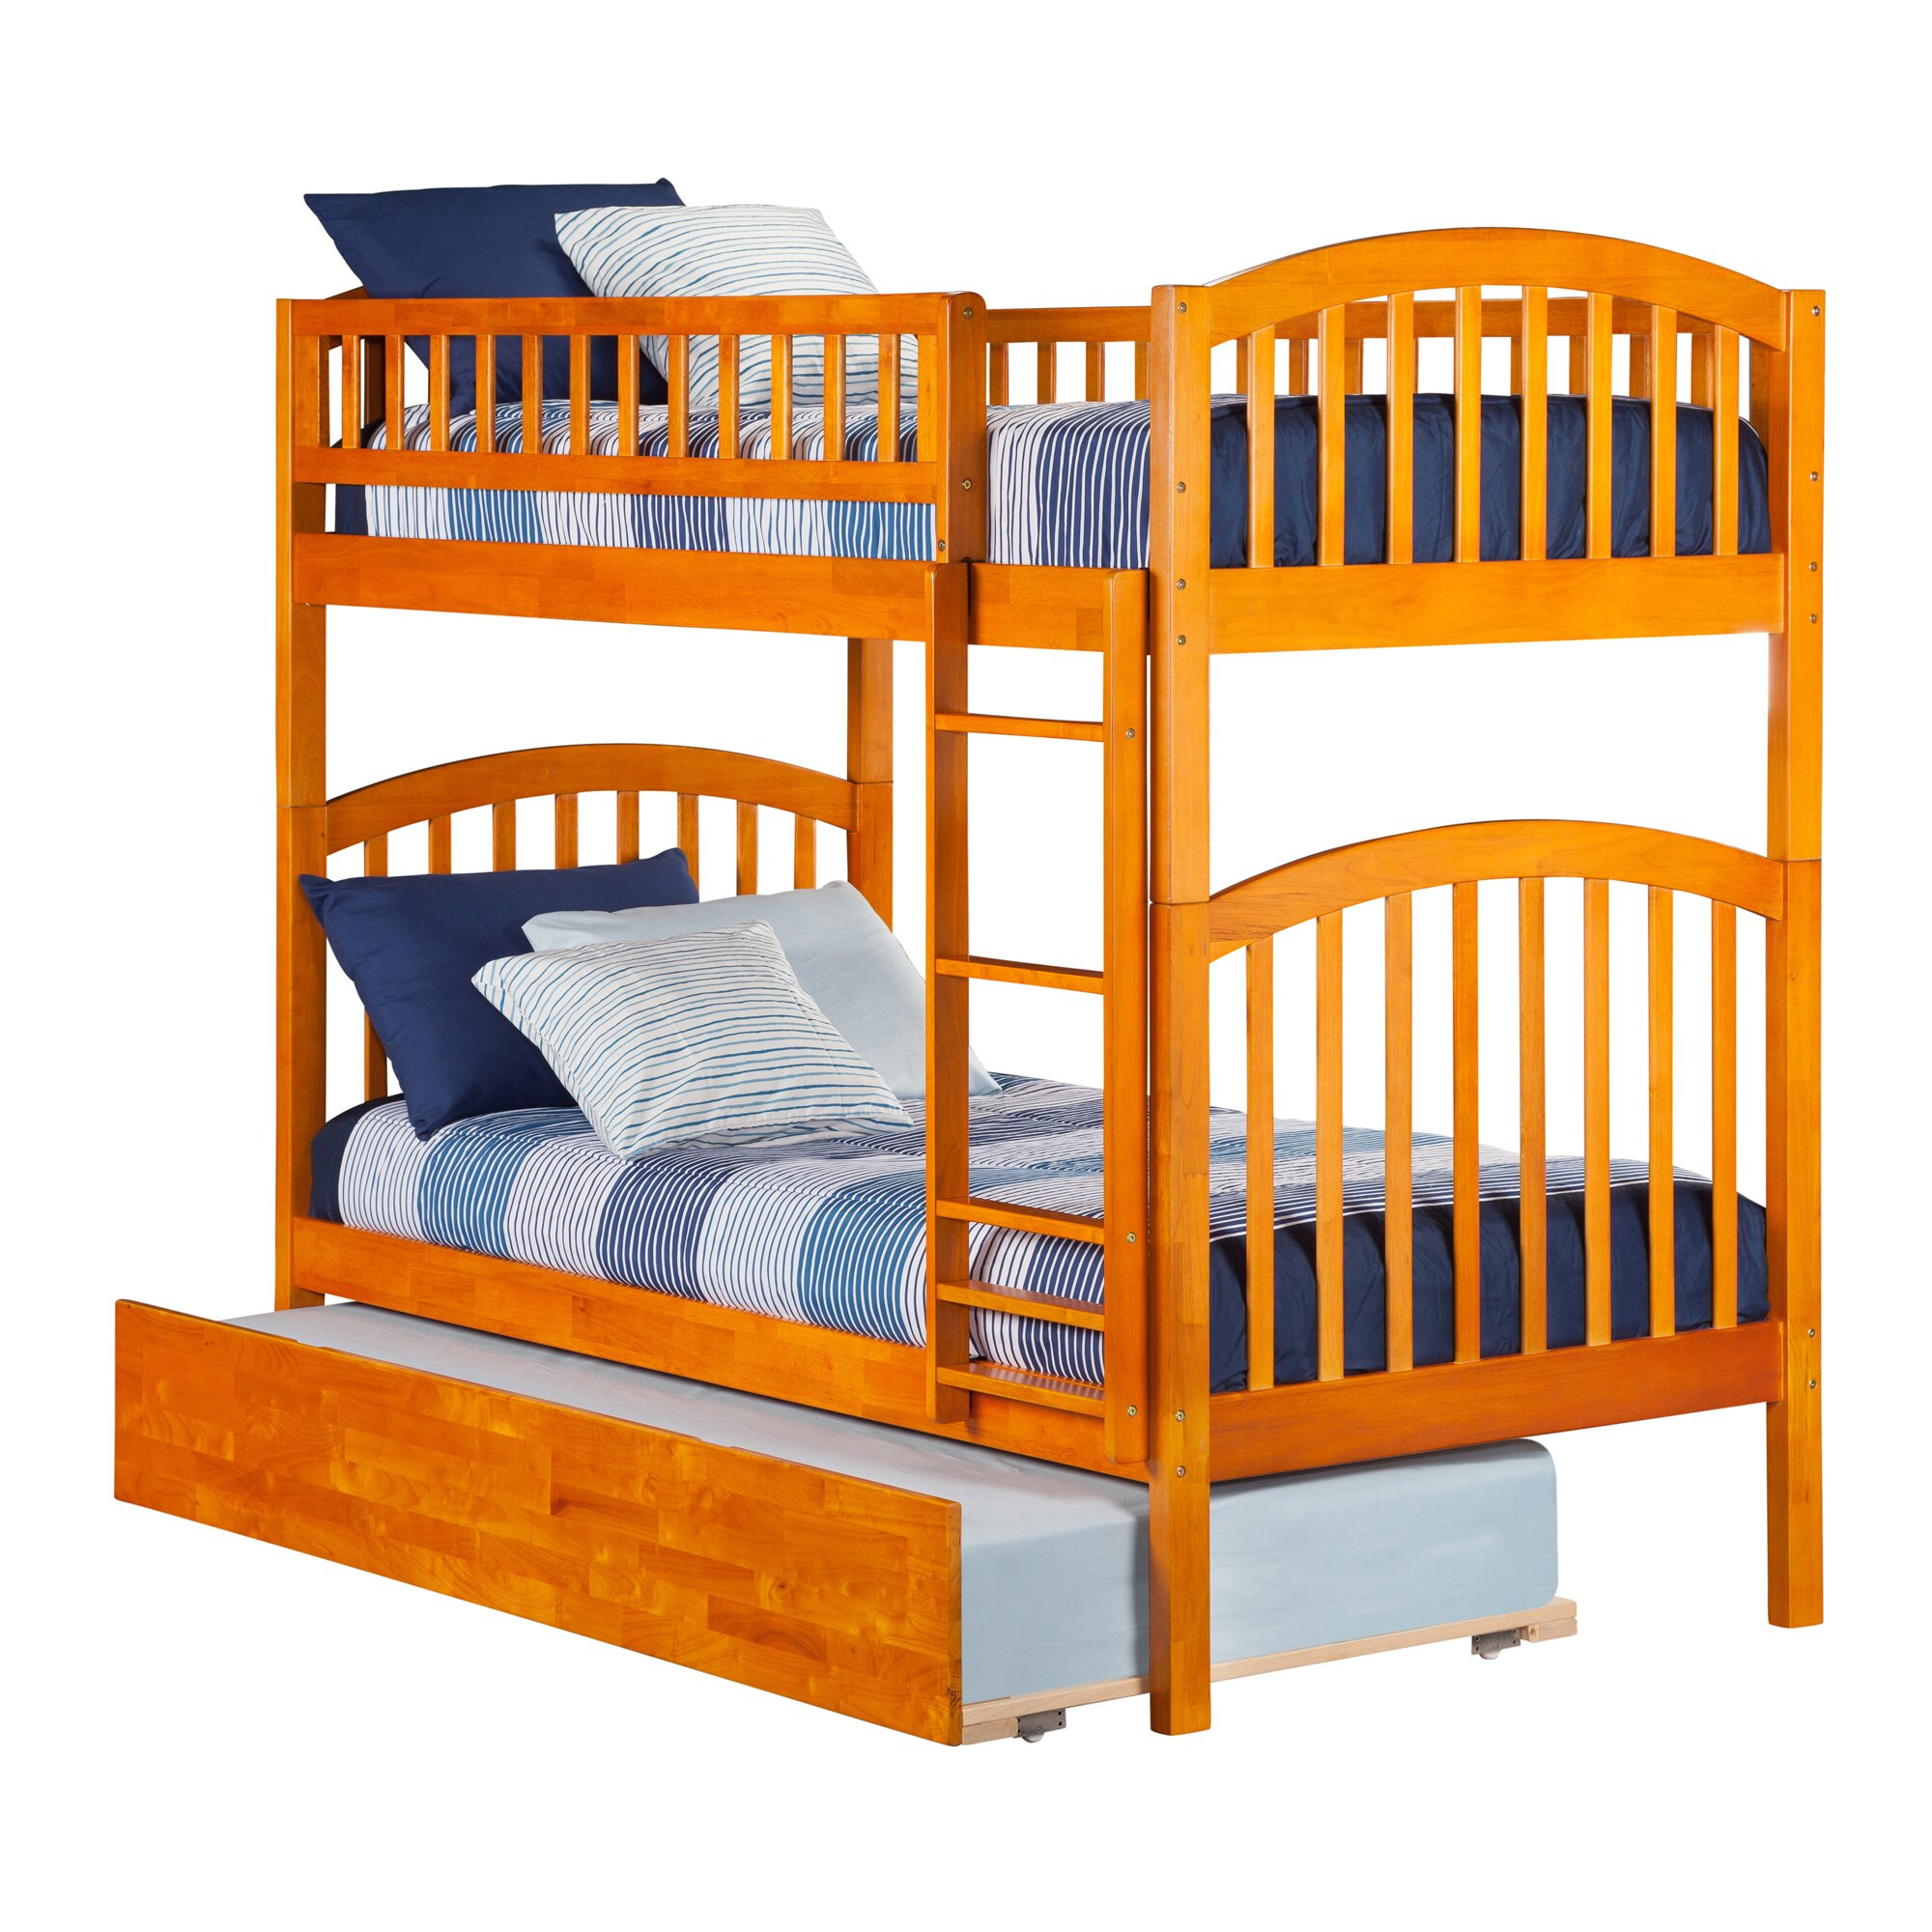 Richland Twin Bunk Bed : Wayfair